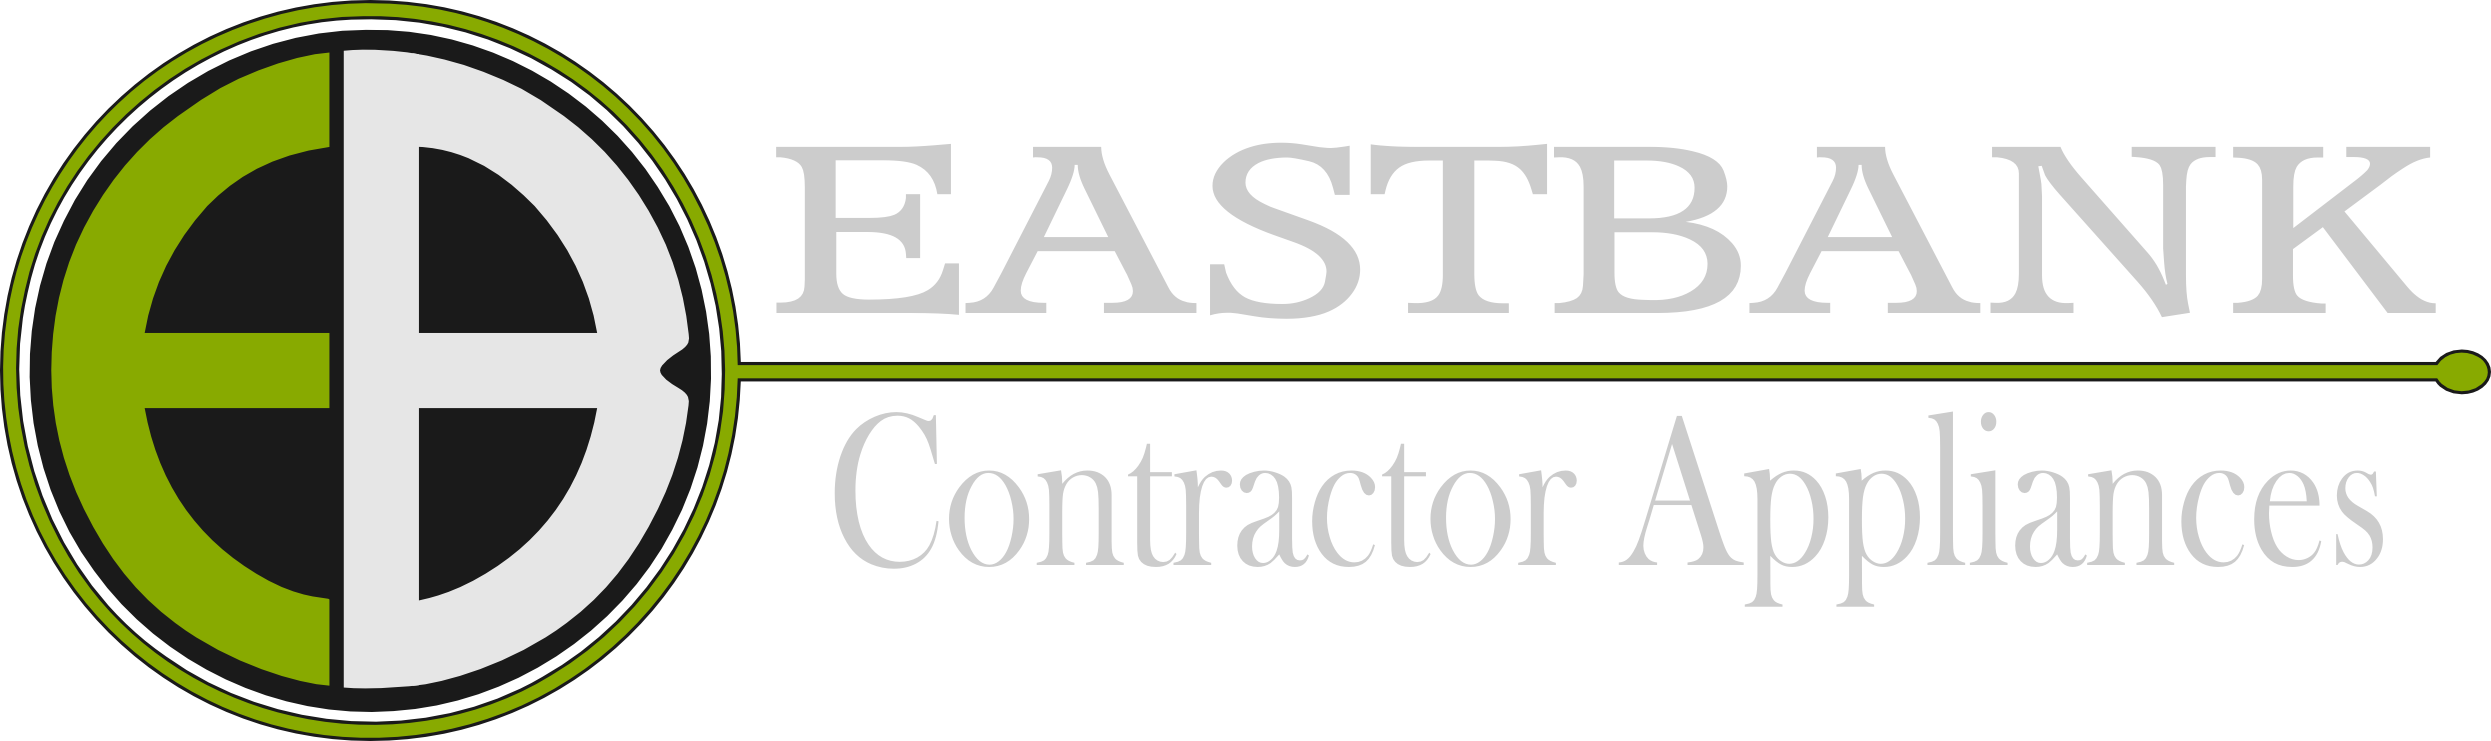 Eastbank Contractor Appliances Logo